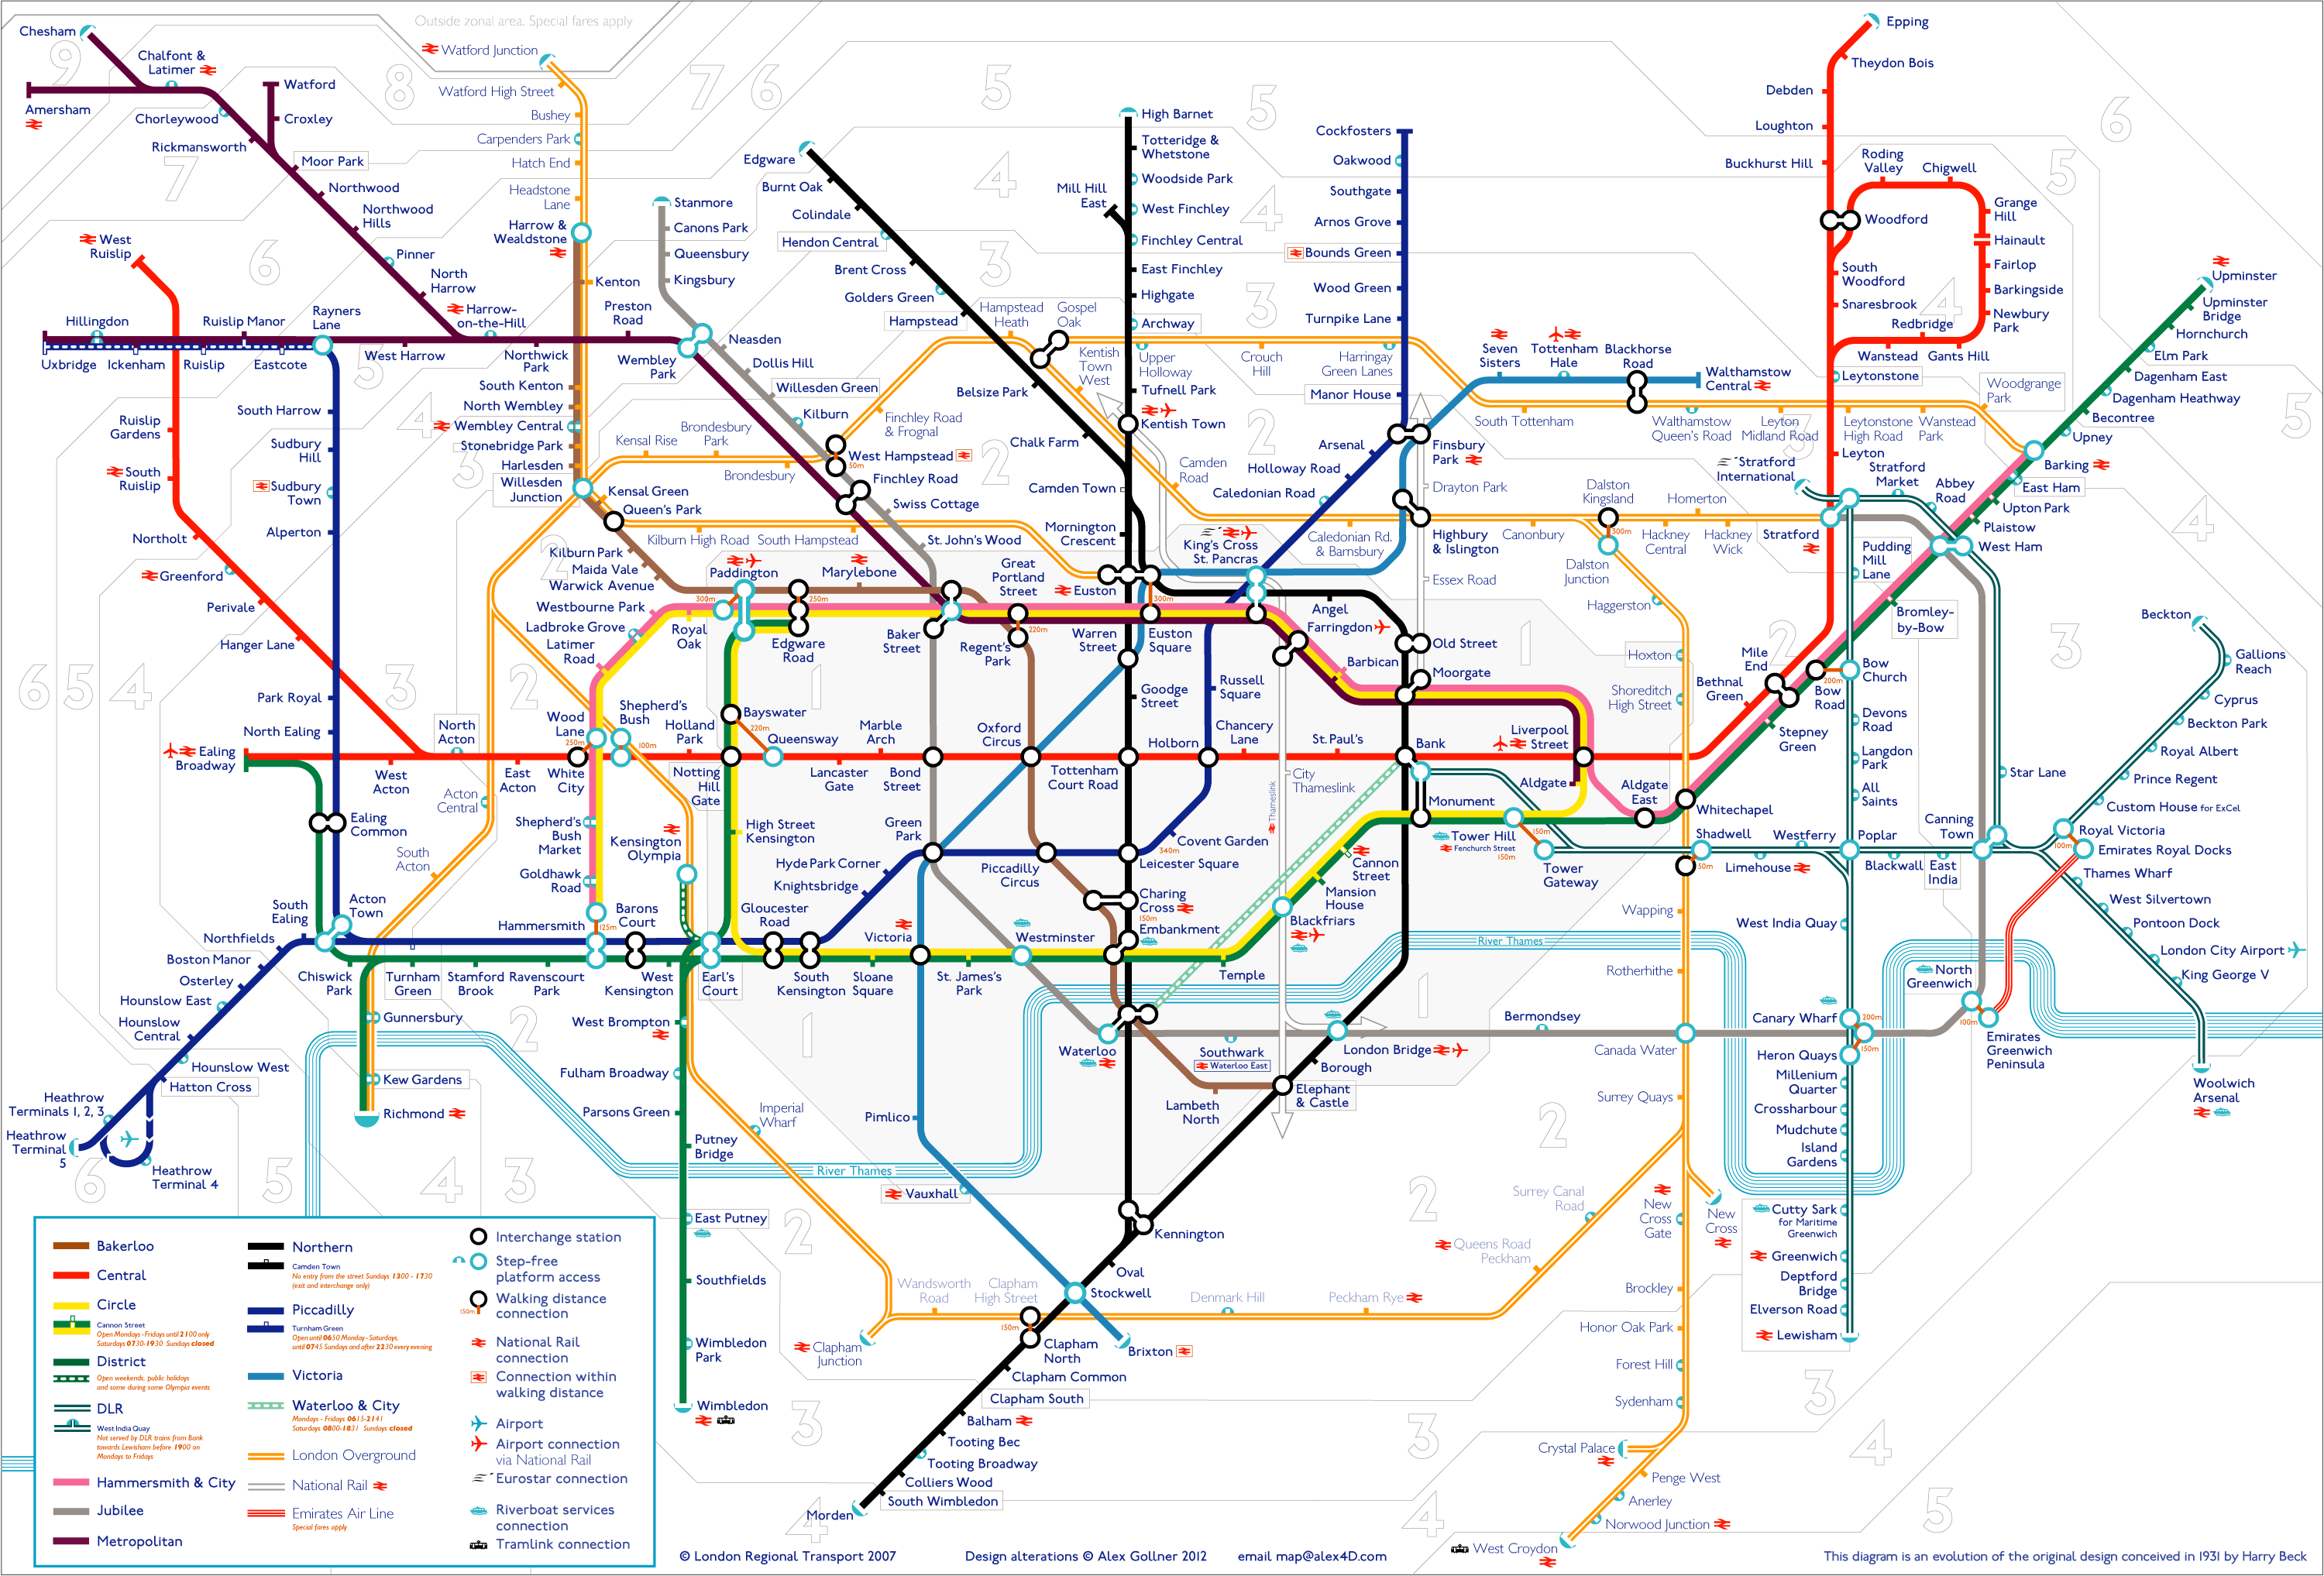 Underground And Overground Map Tube map | alex4D old blog Underground And Overground Map